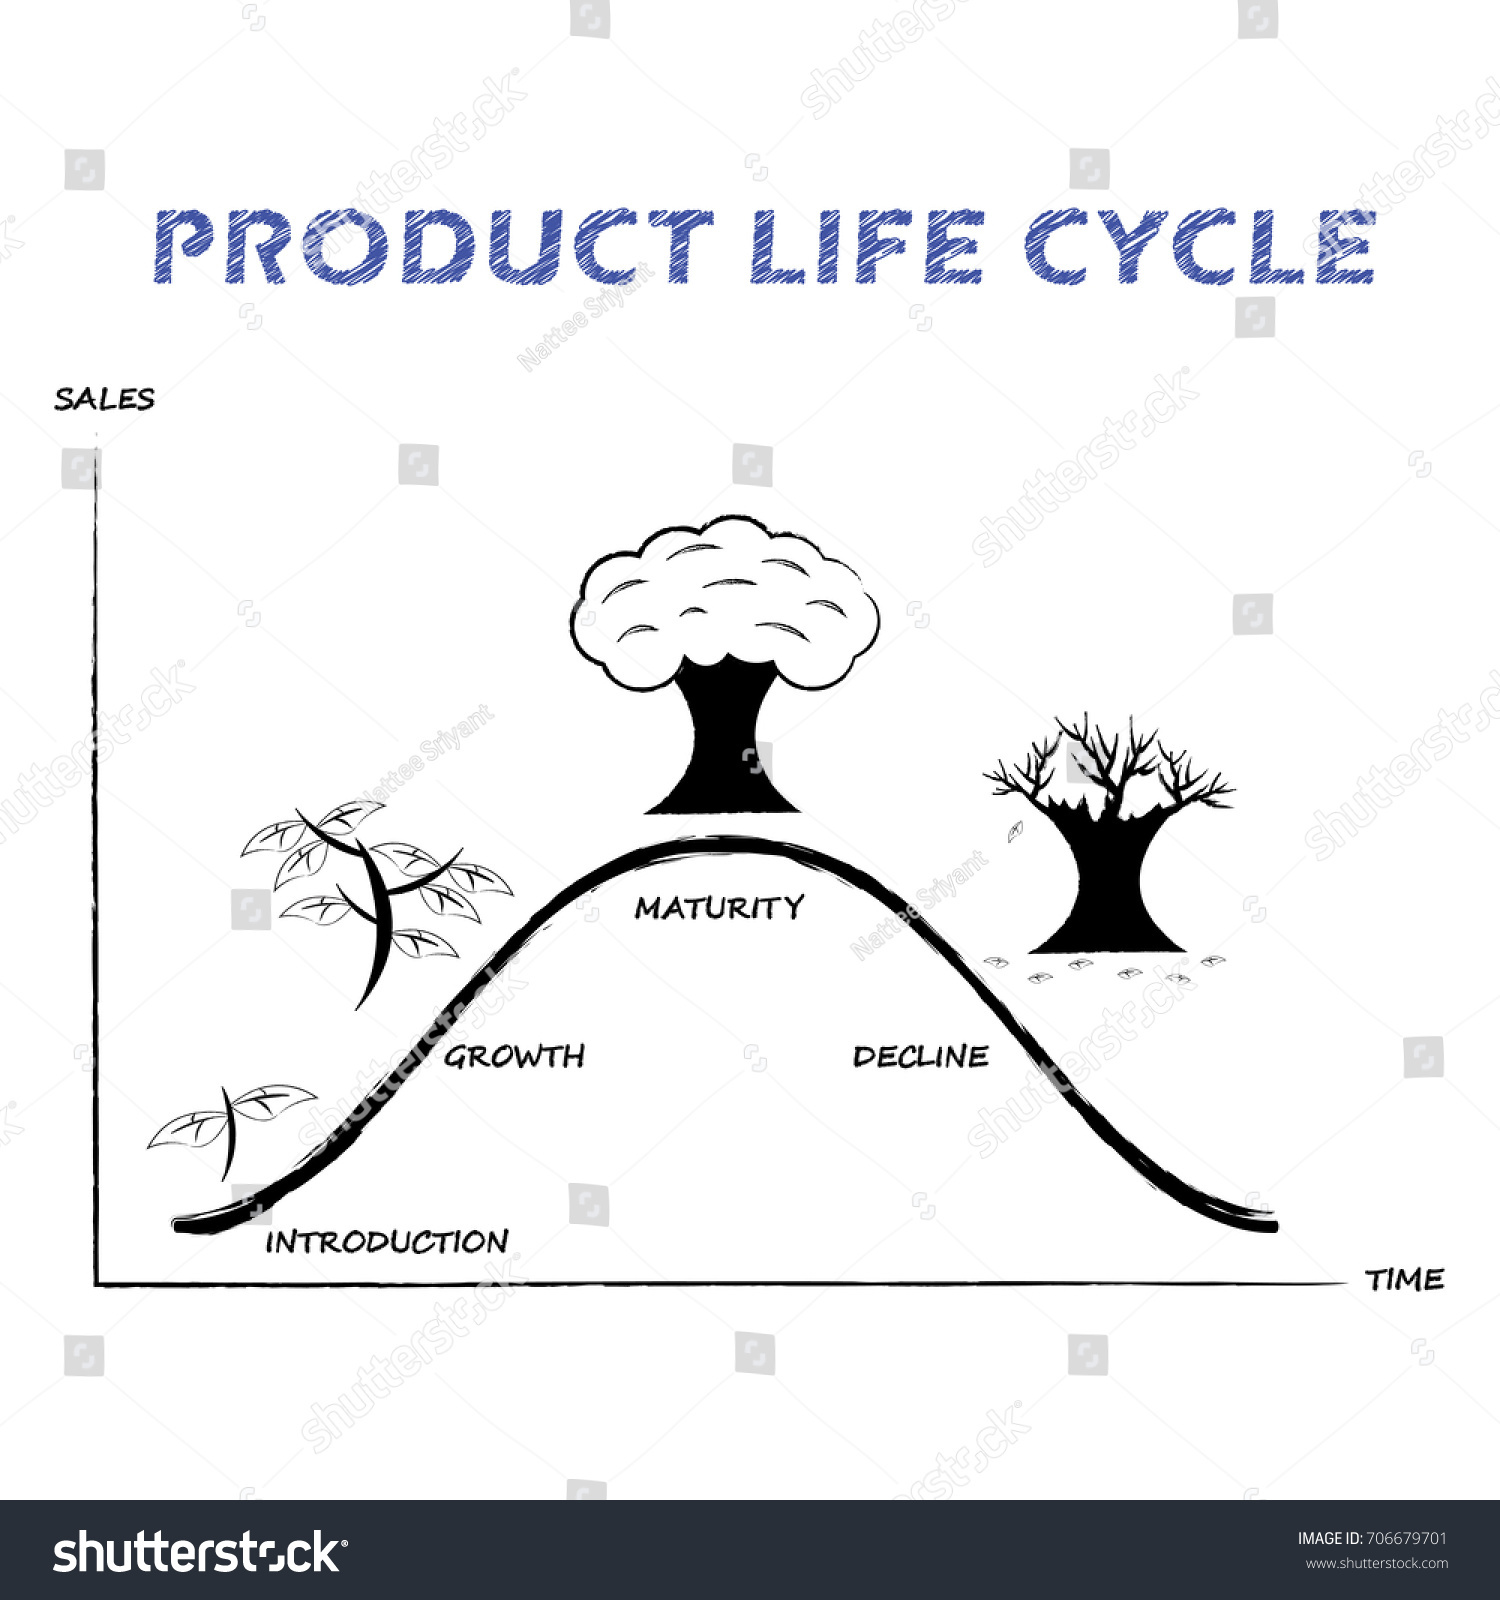 Black white product life cycle diagram stock vector royalty free black white product life cycle diagram is drawn by pencil or charcoal on white background ccuart Choice Image